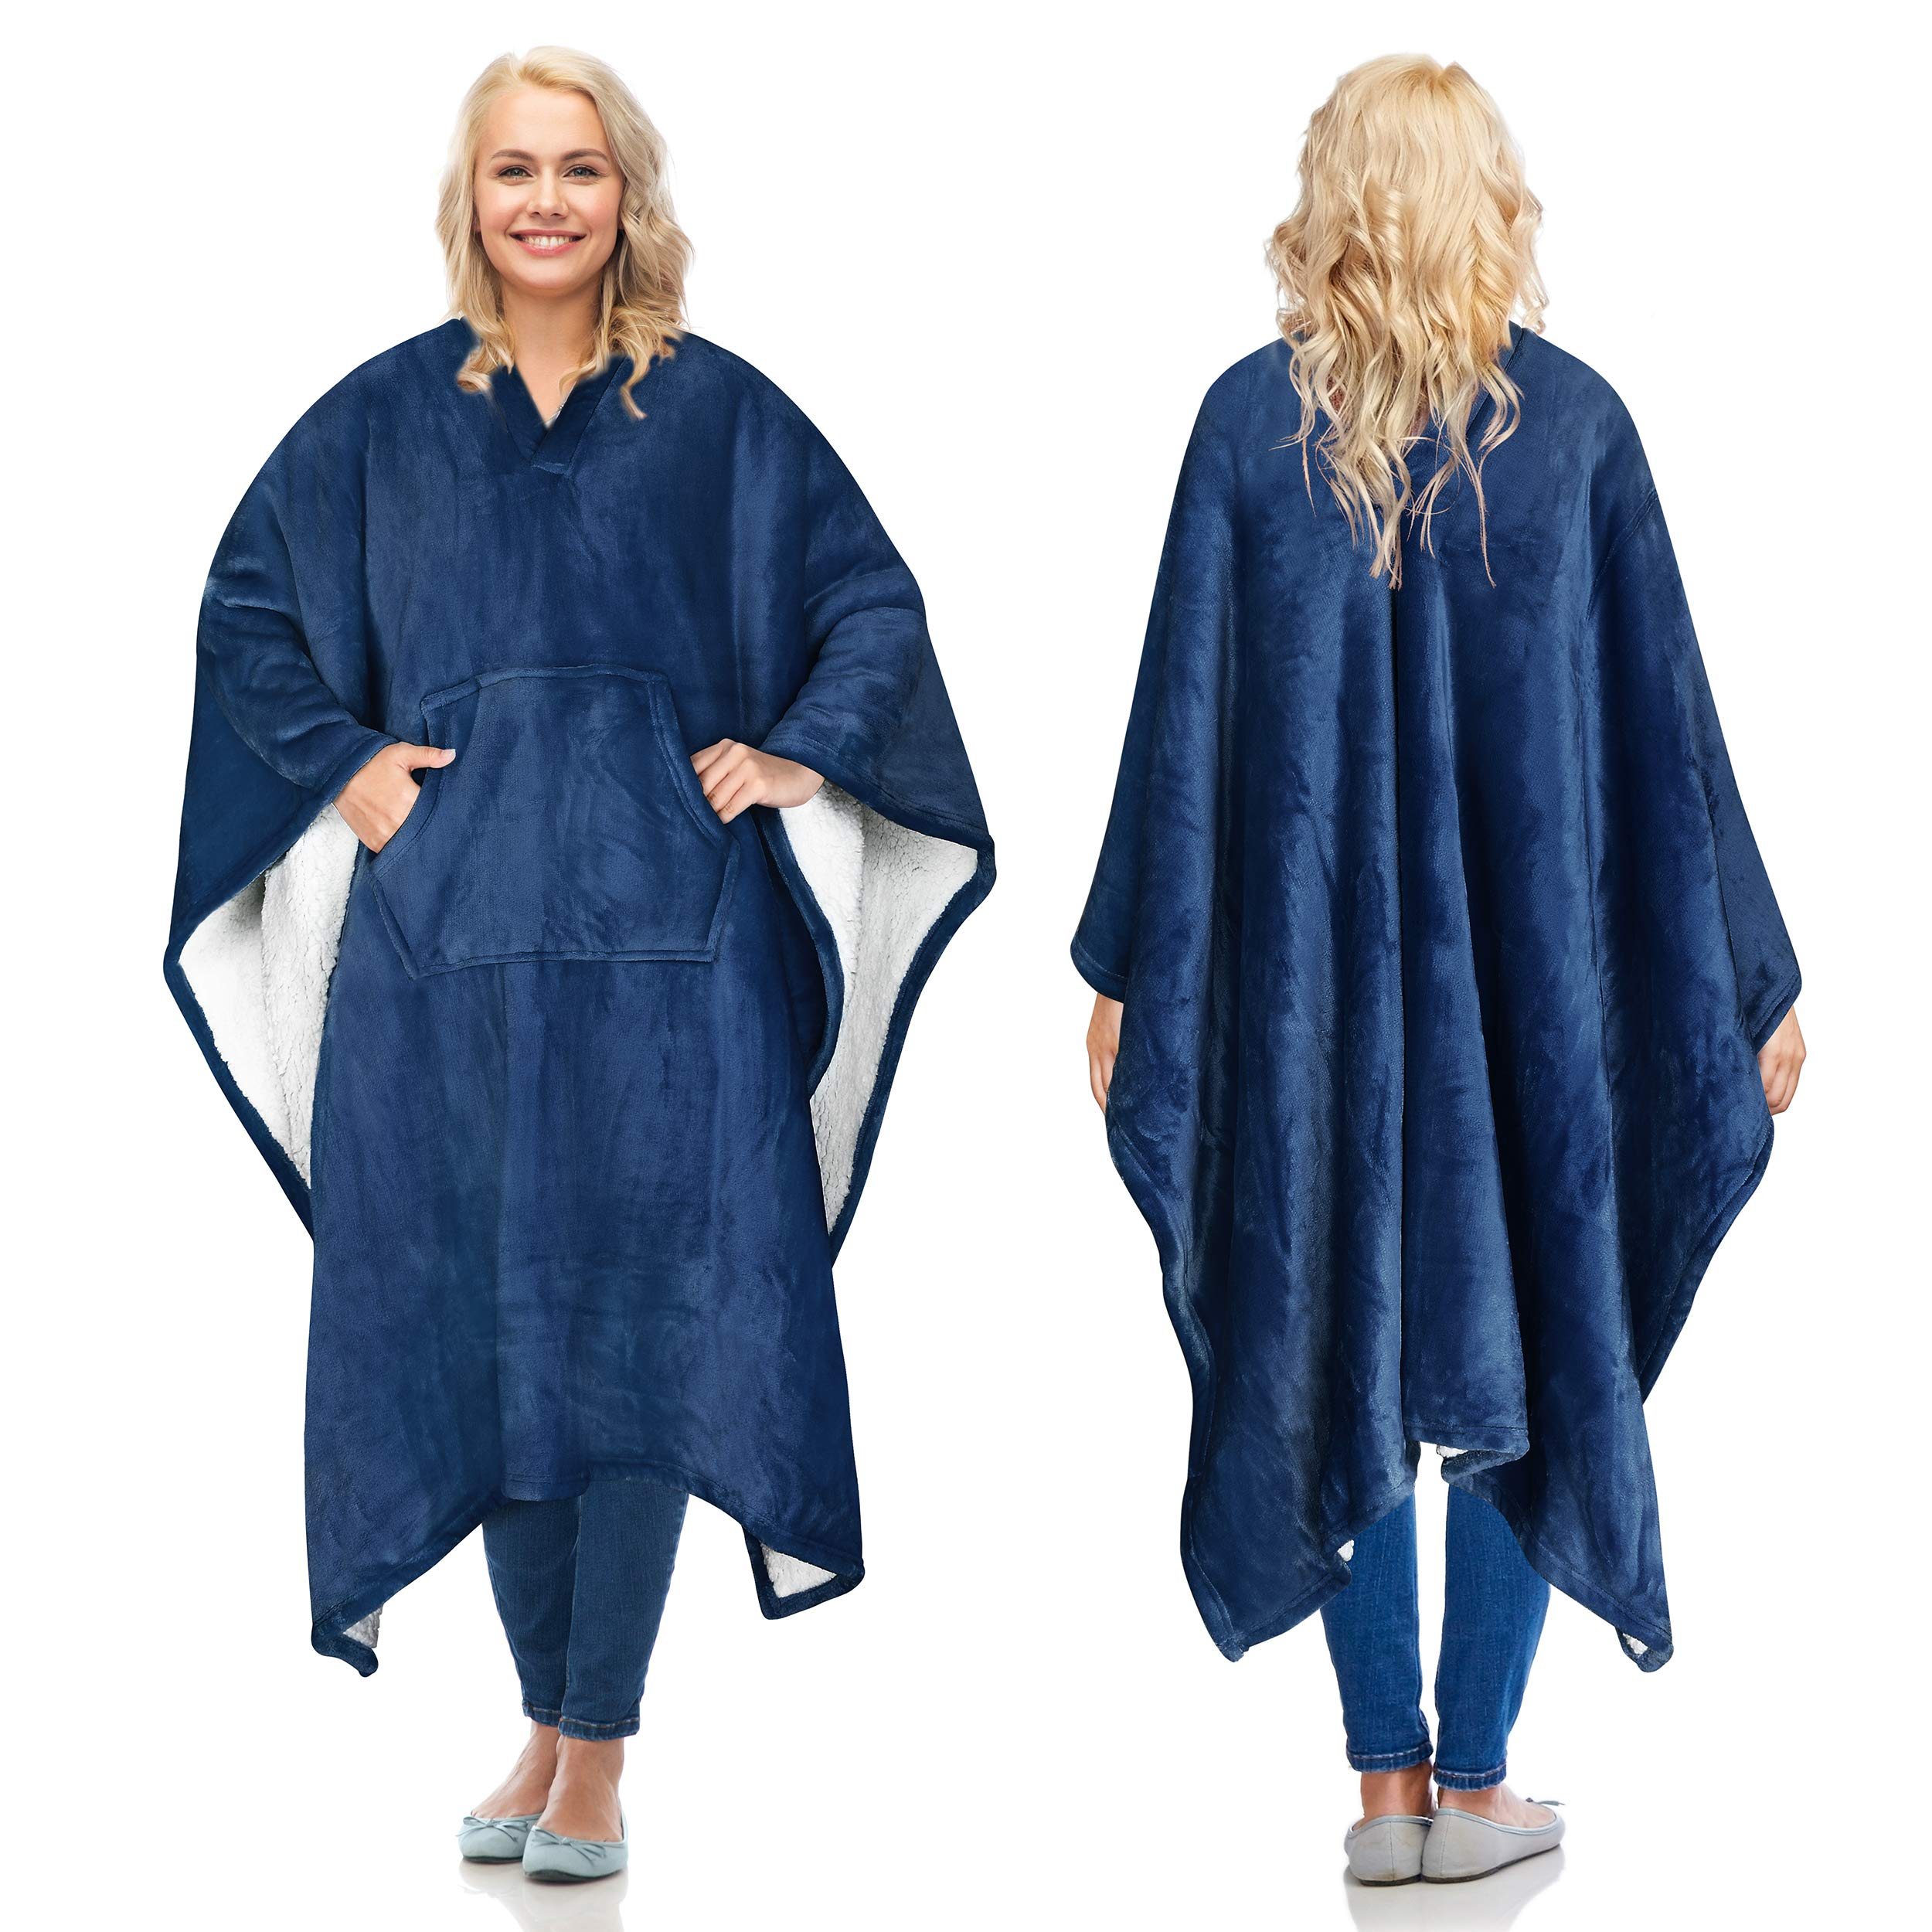 Catalonia Sherpa Wearable Blanket Poncho for Adult Women Men,Wrap Blanket Cape with Pocket,Warm,Soft,Cozy,Snuggly,Comfort Gift,No Sleeves,Navy by Catalonia